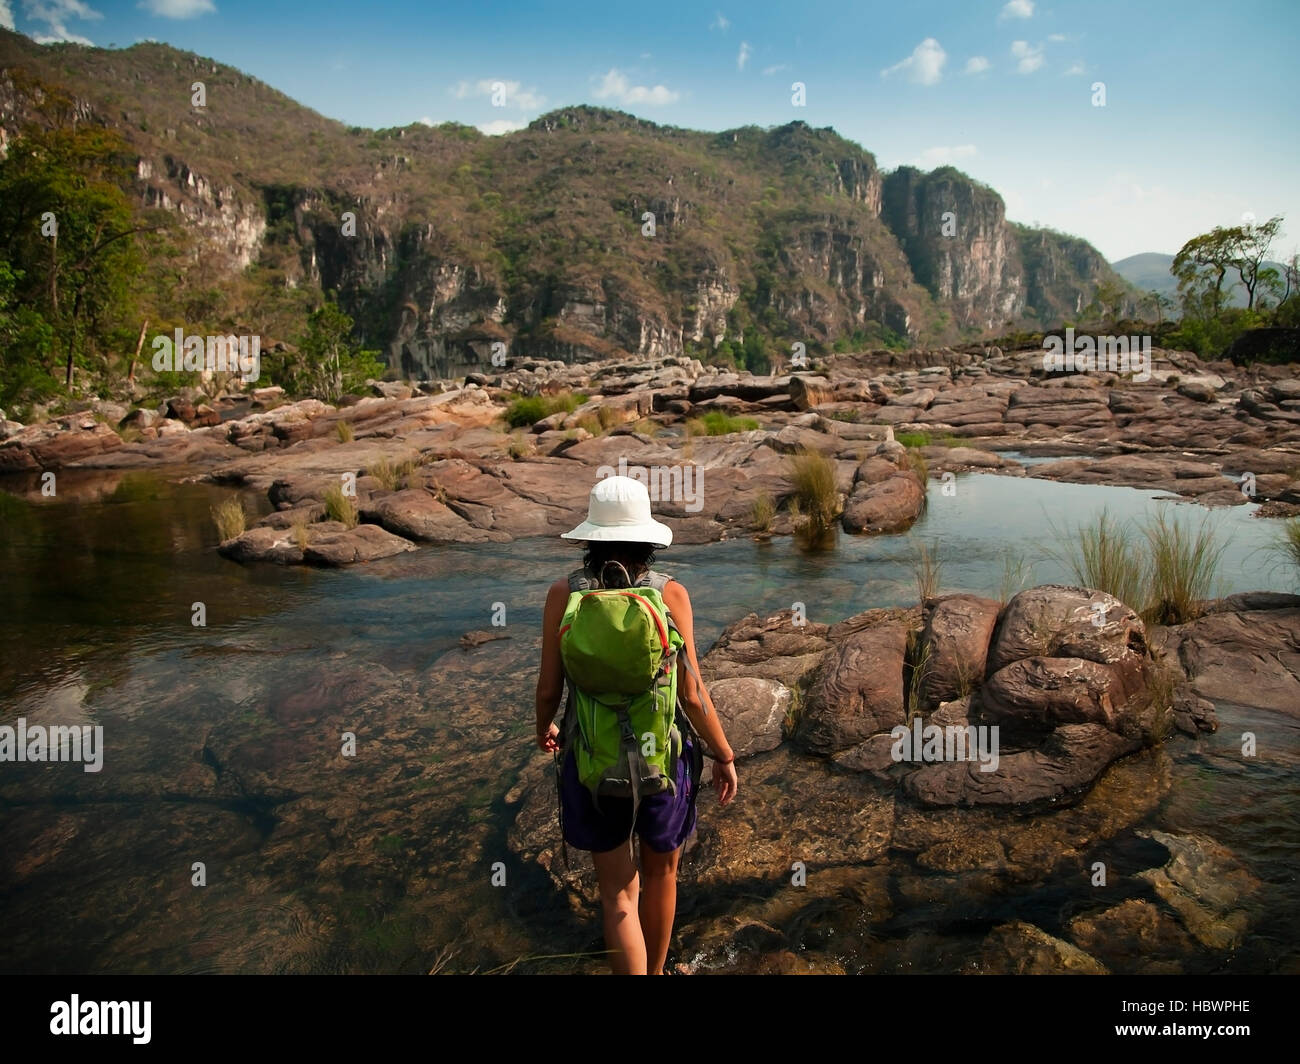 Girl on a hike trough the rivers and the mountains of Chapada dos Veadeiros - Stock Image